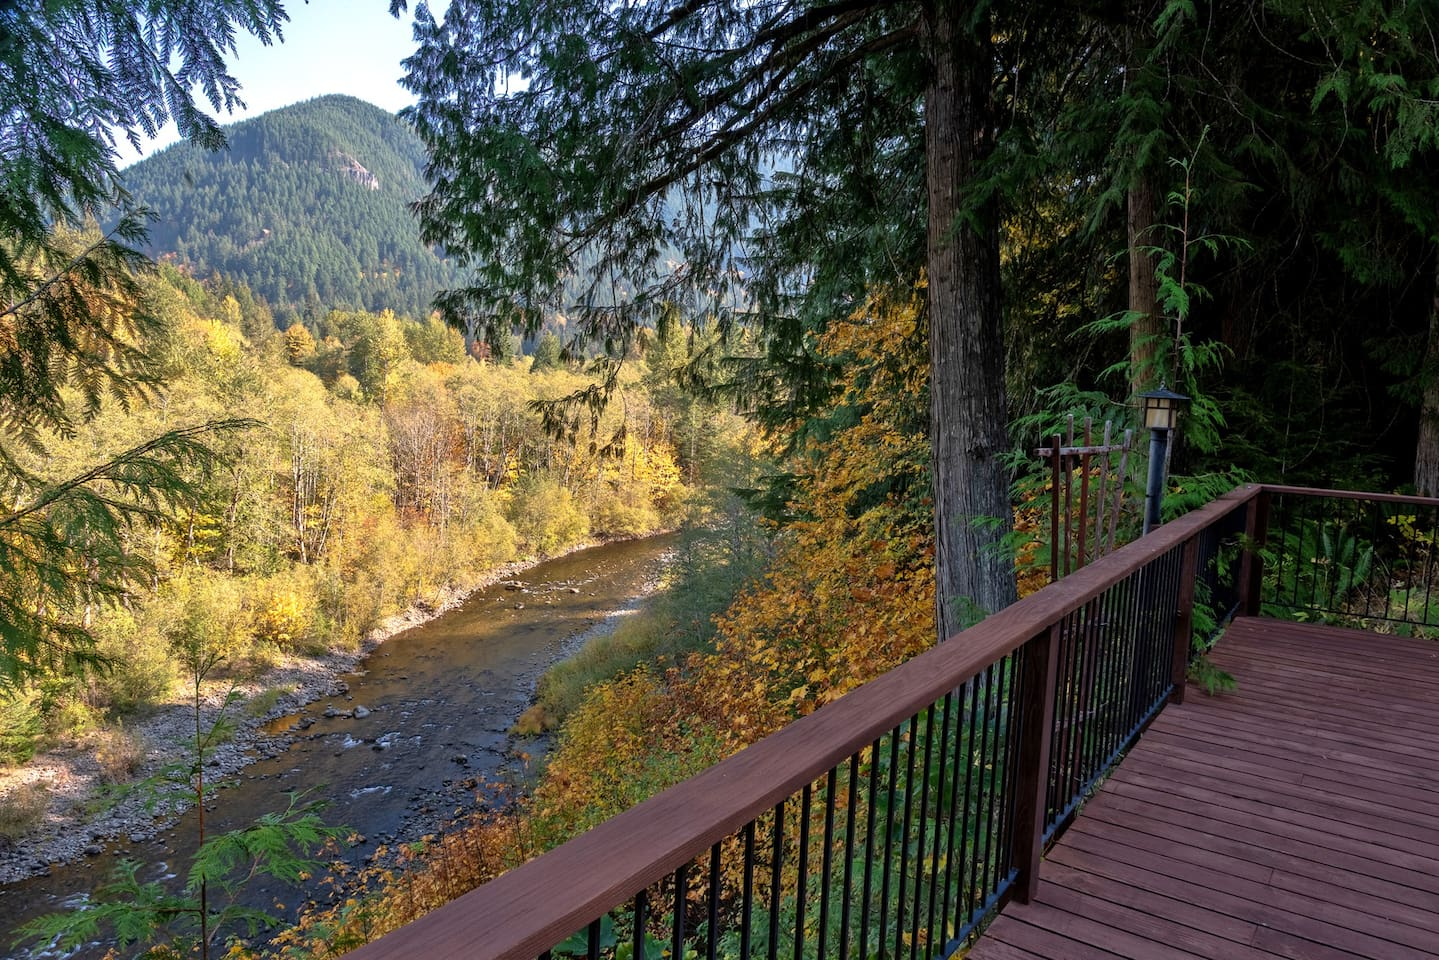 Salmon River view with fall colors at the Crystal Creek Chalet